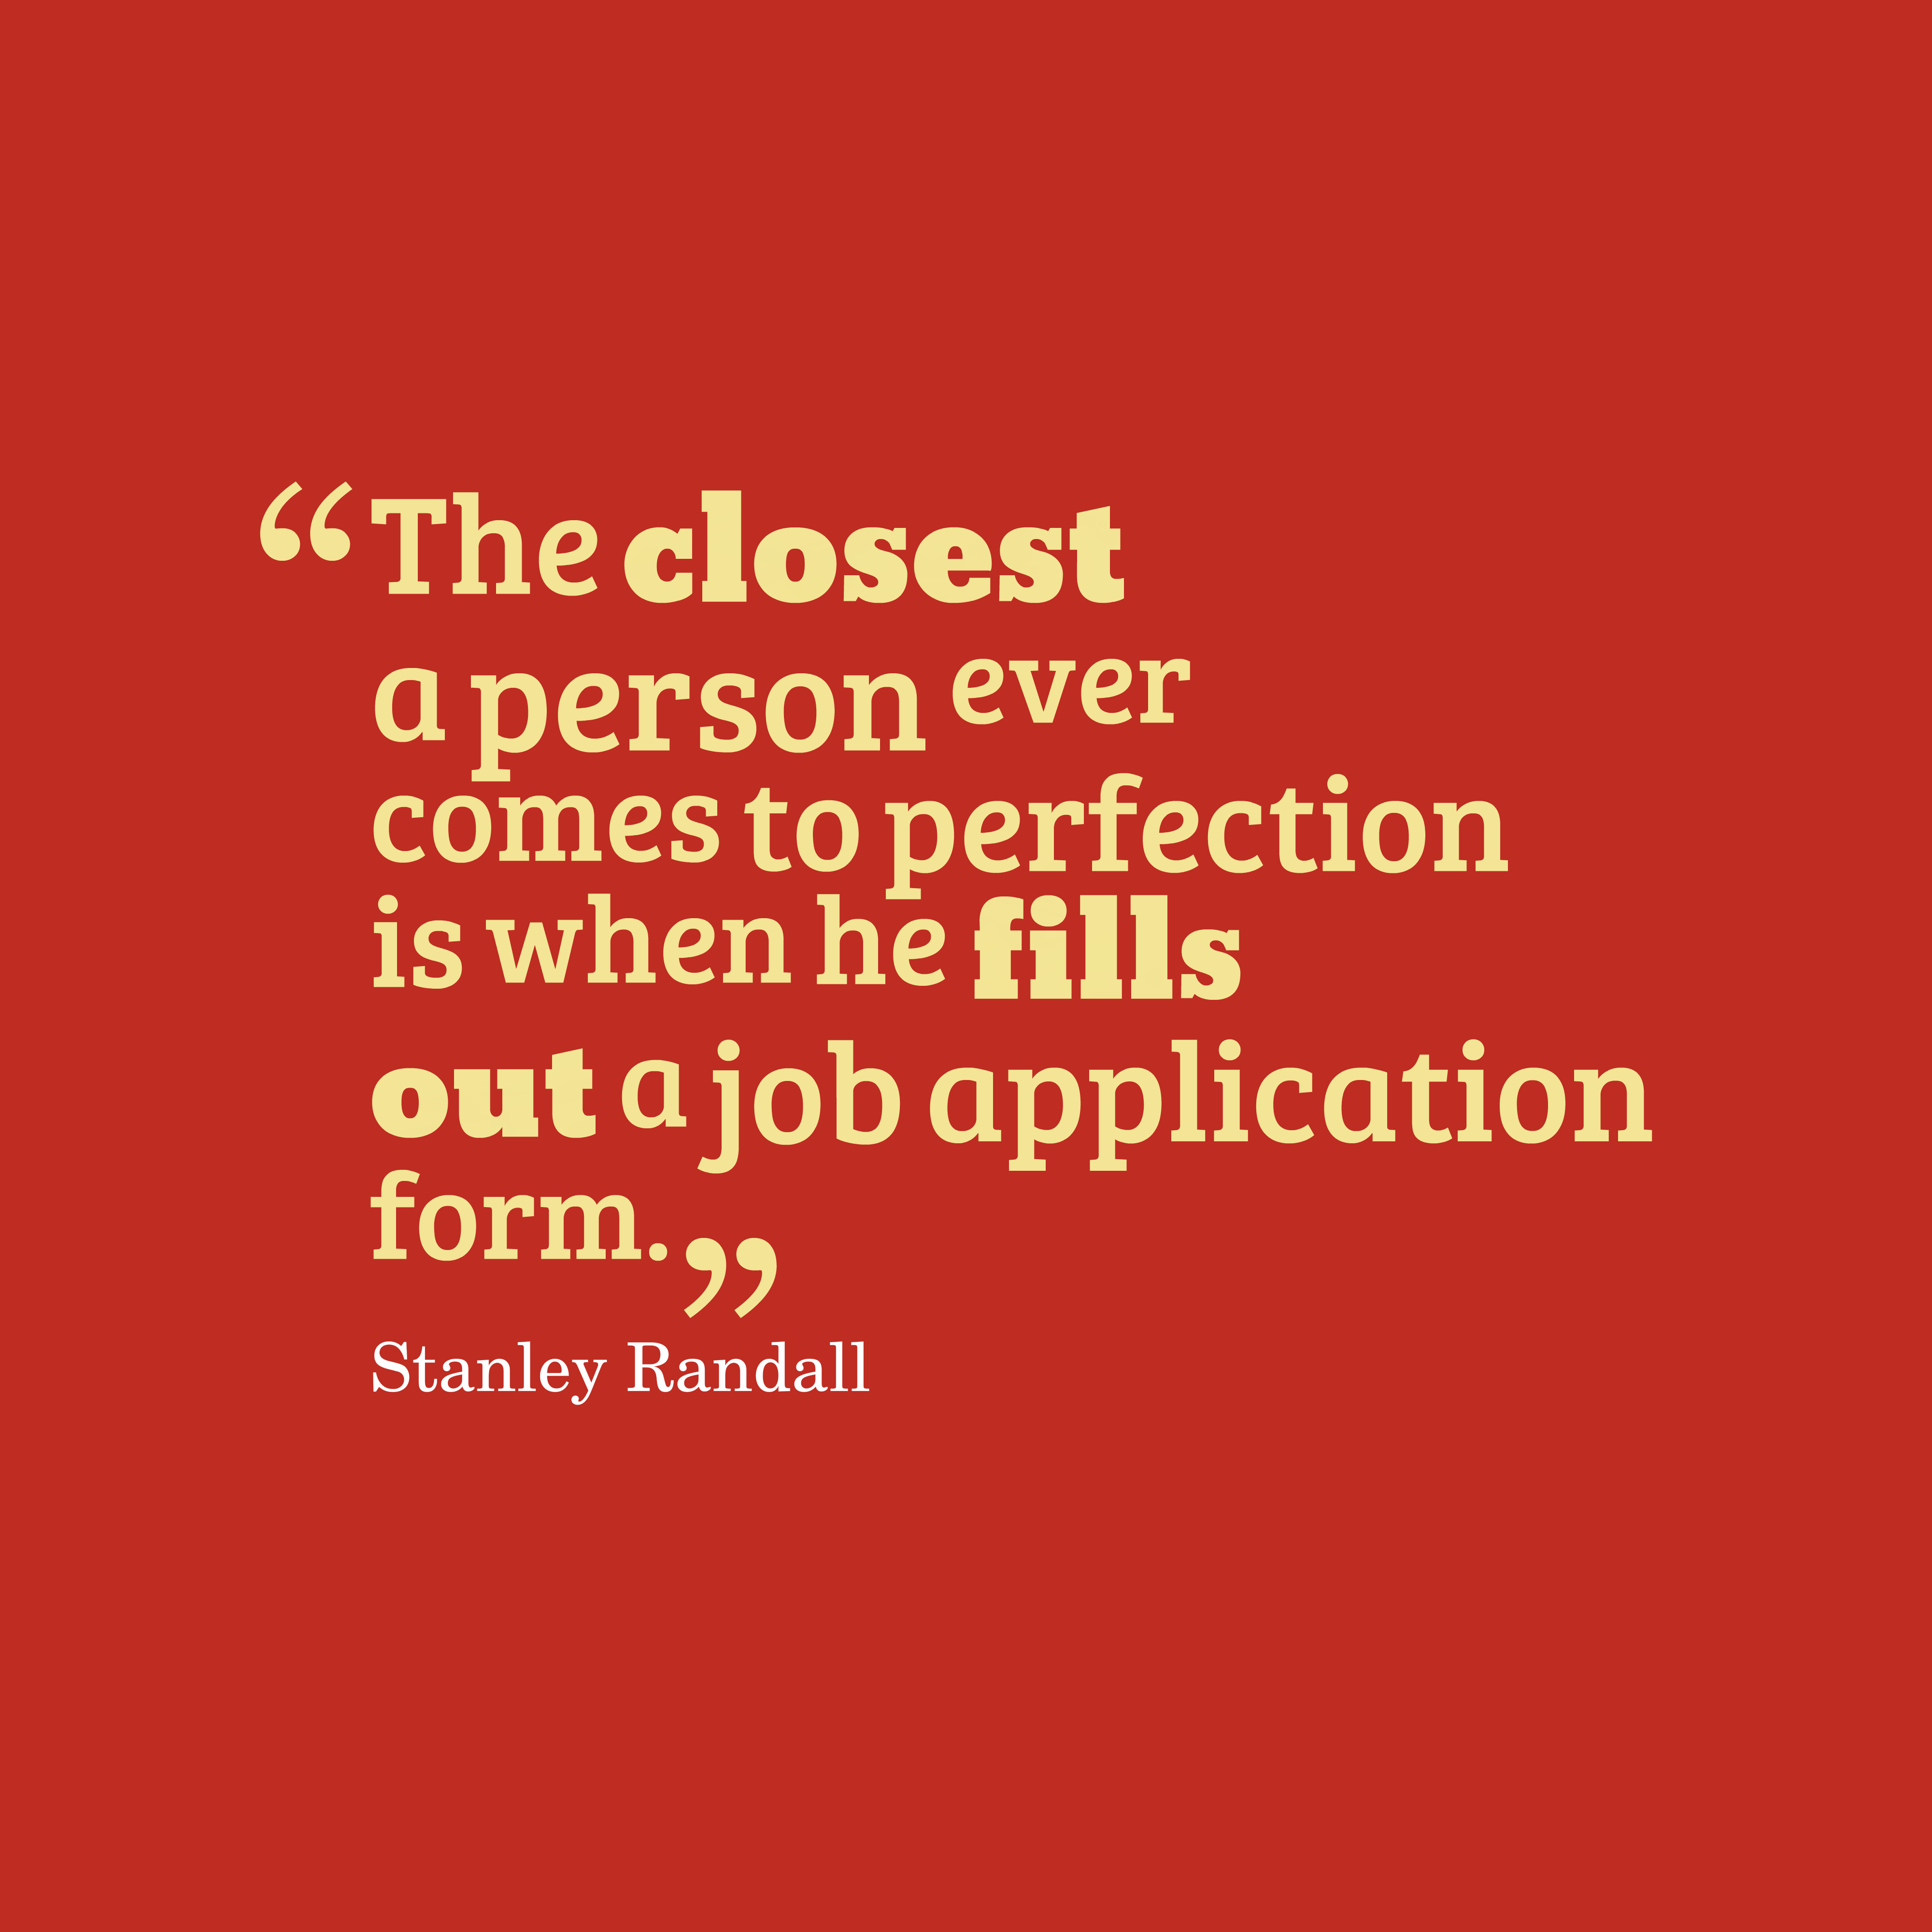 get high resolution using text from stanley randall quote about hi res picture from stanley randall quote about job